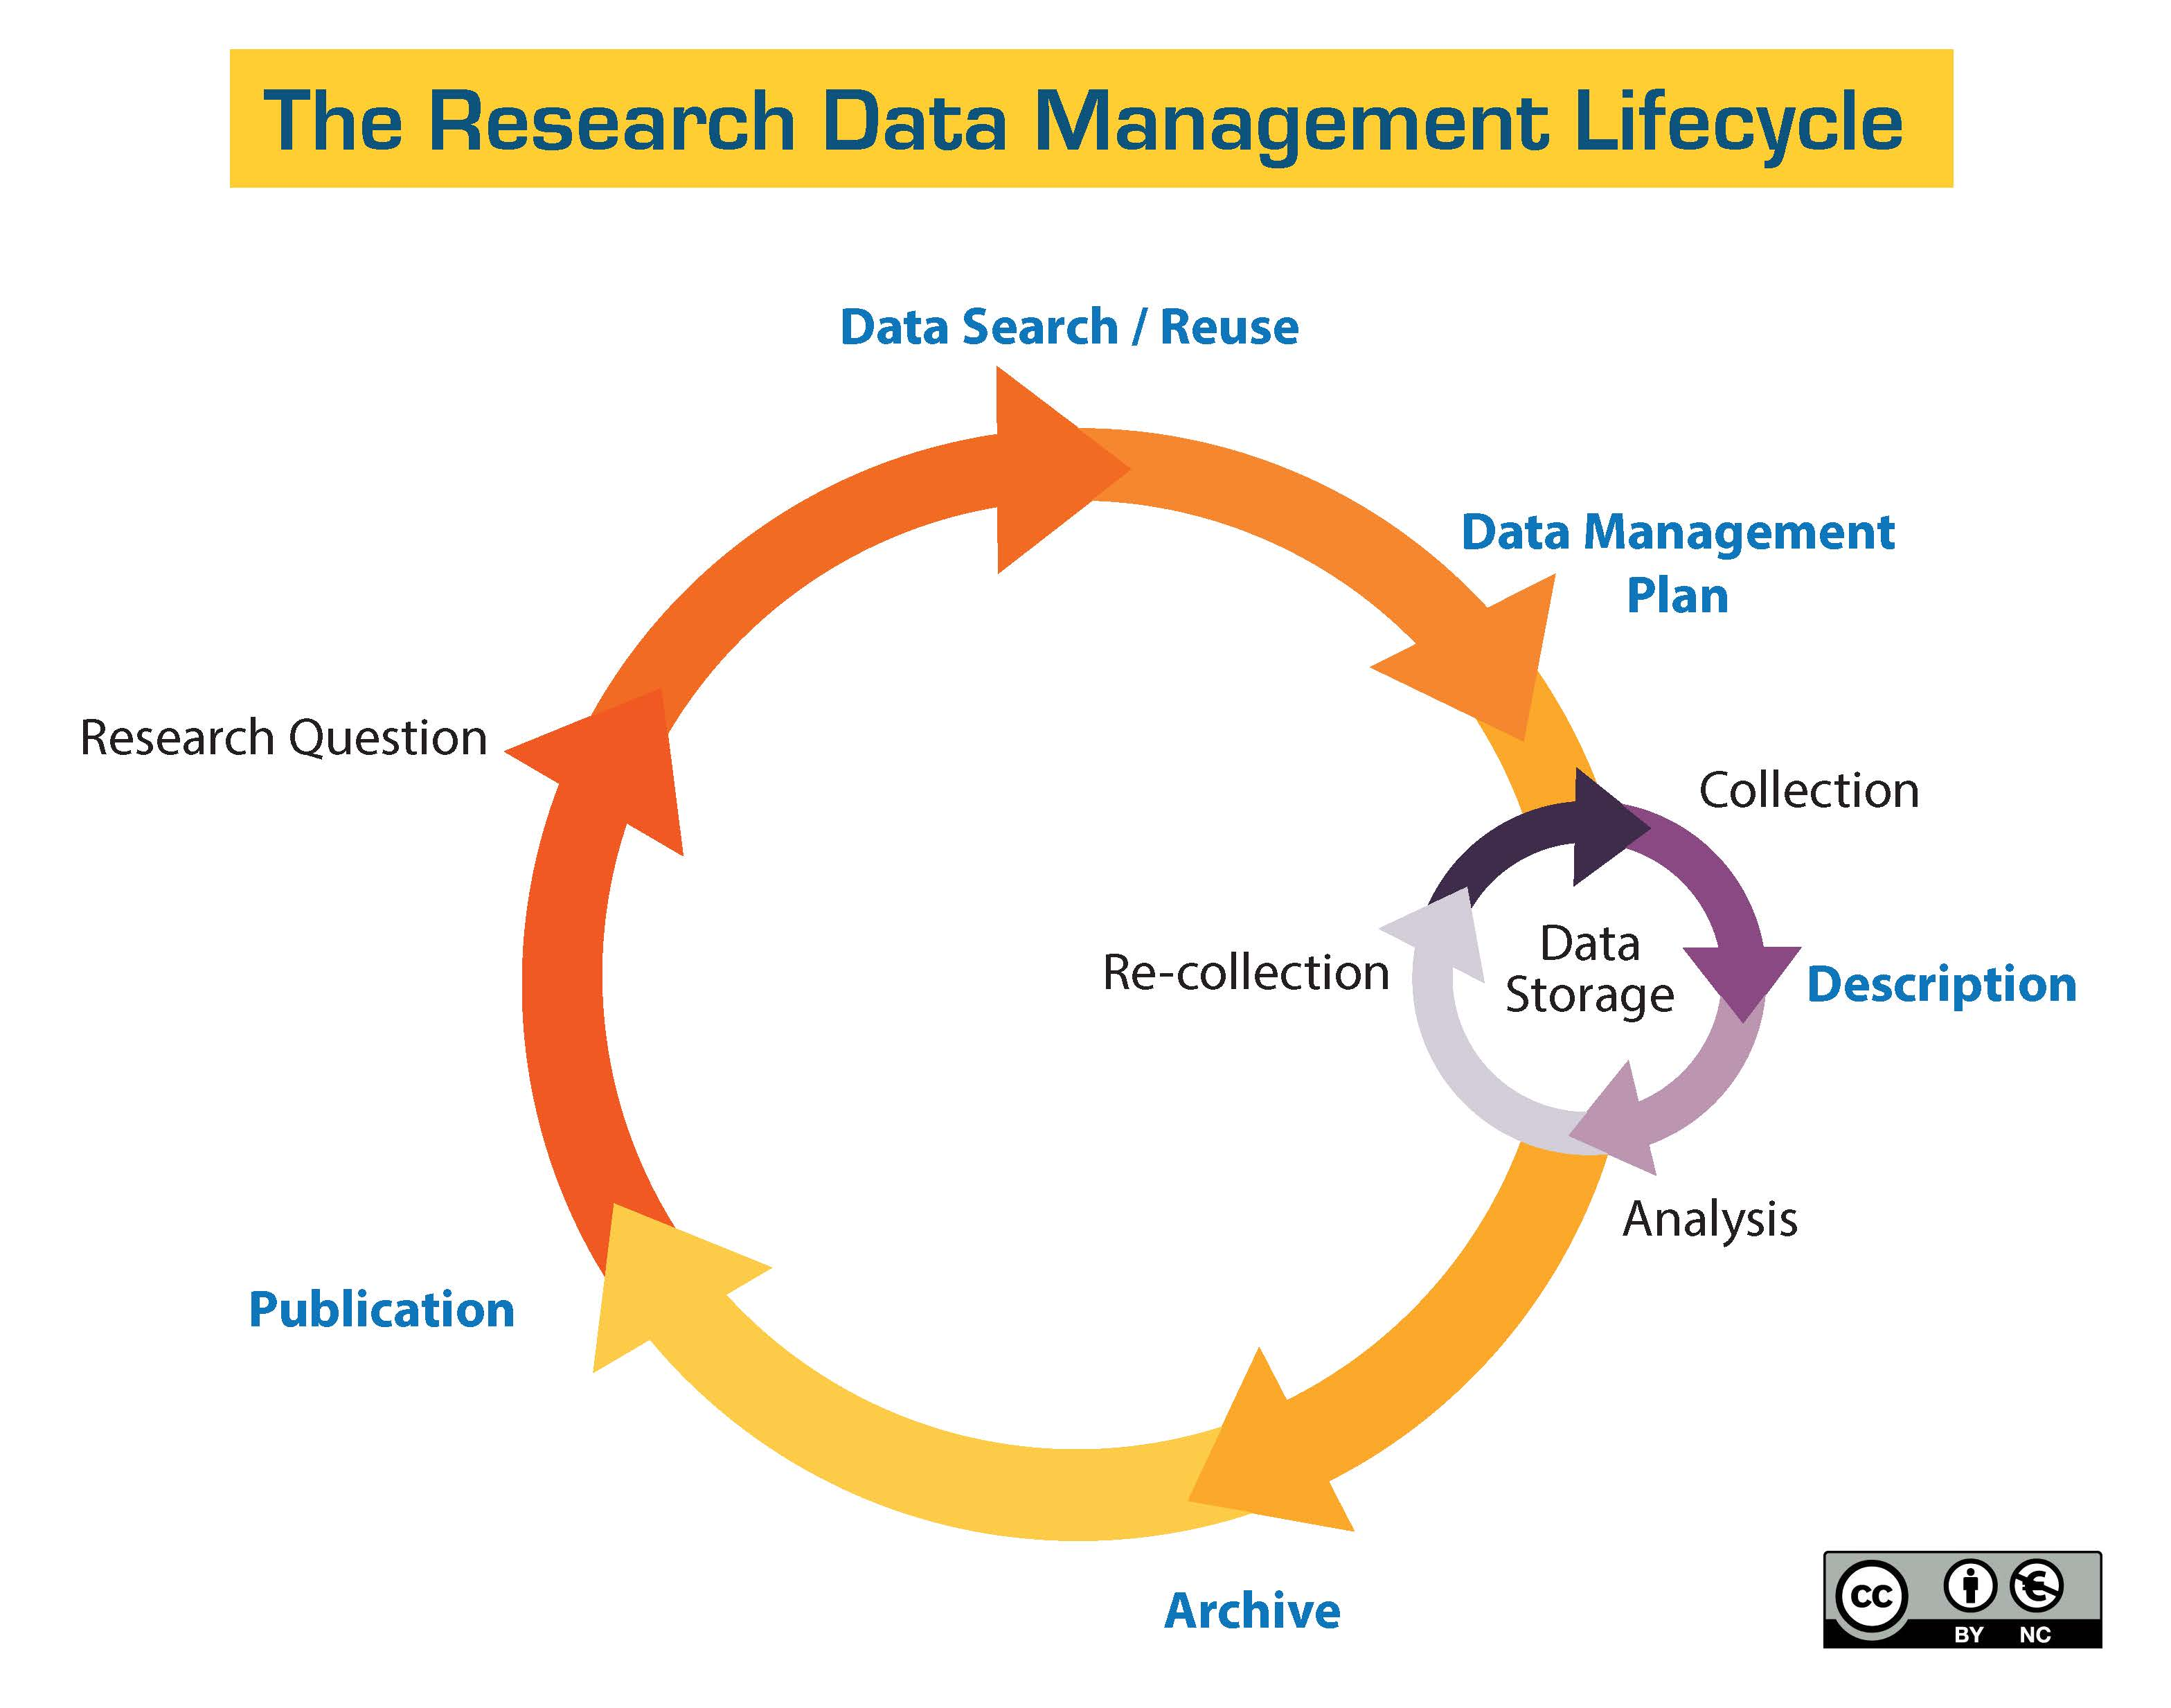 Figura 2 The University of California, Santa Cruz, Data Management LibGuide, Research Data Management Lifecycle, diagram,